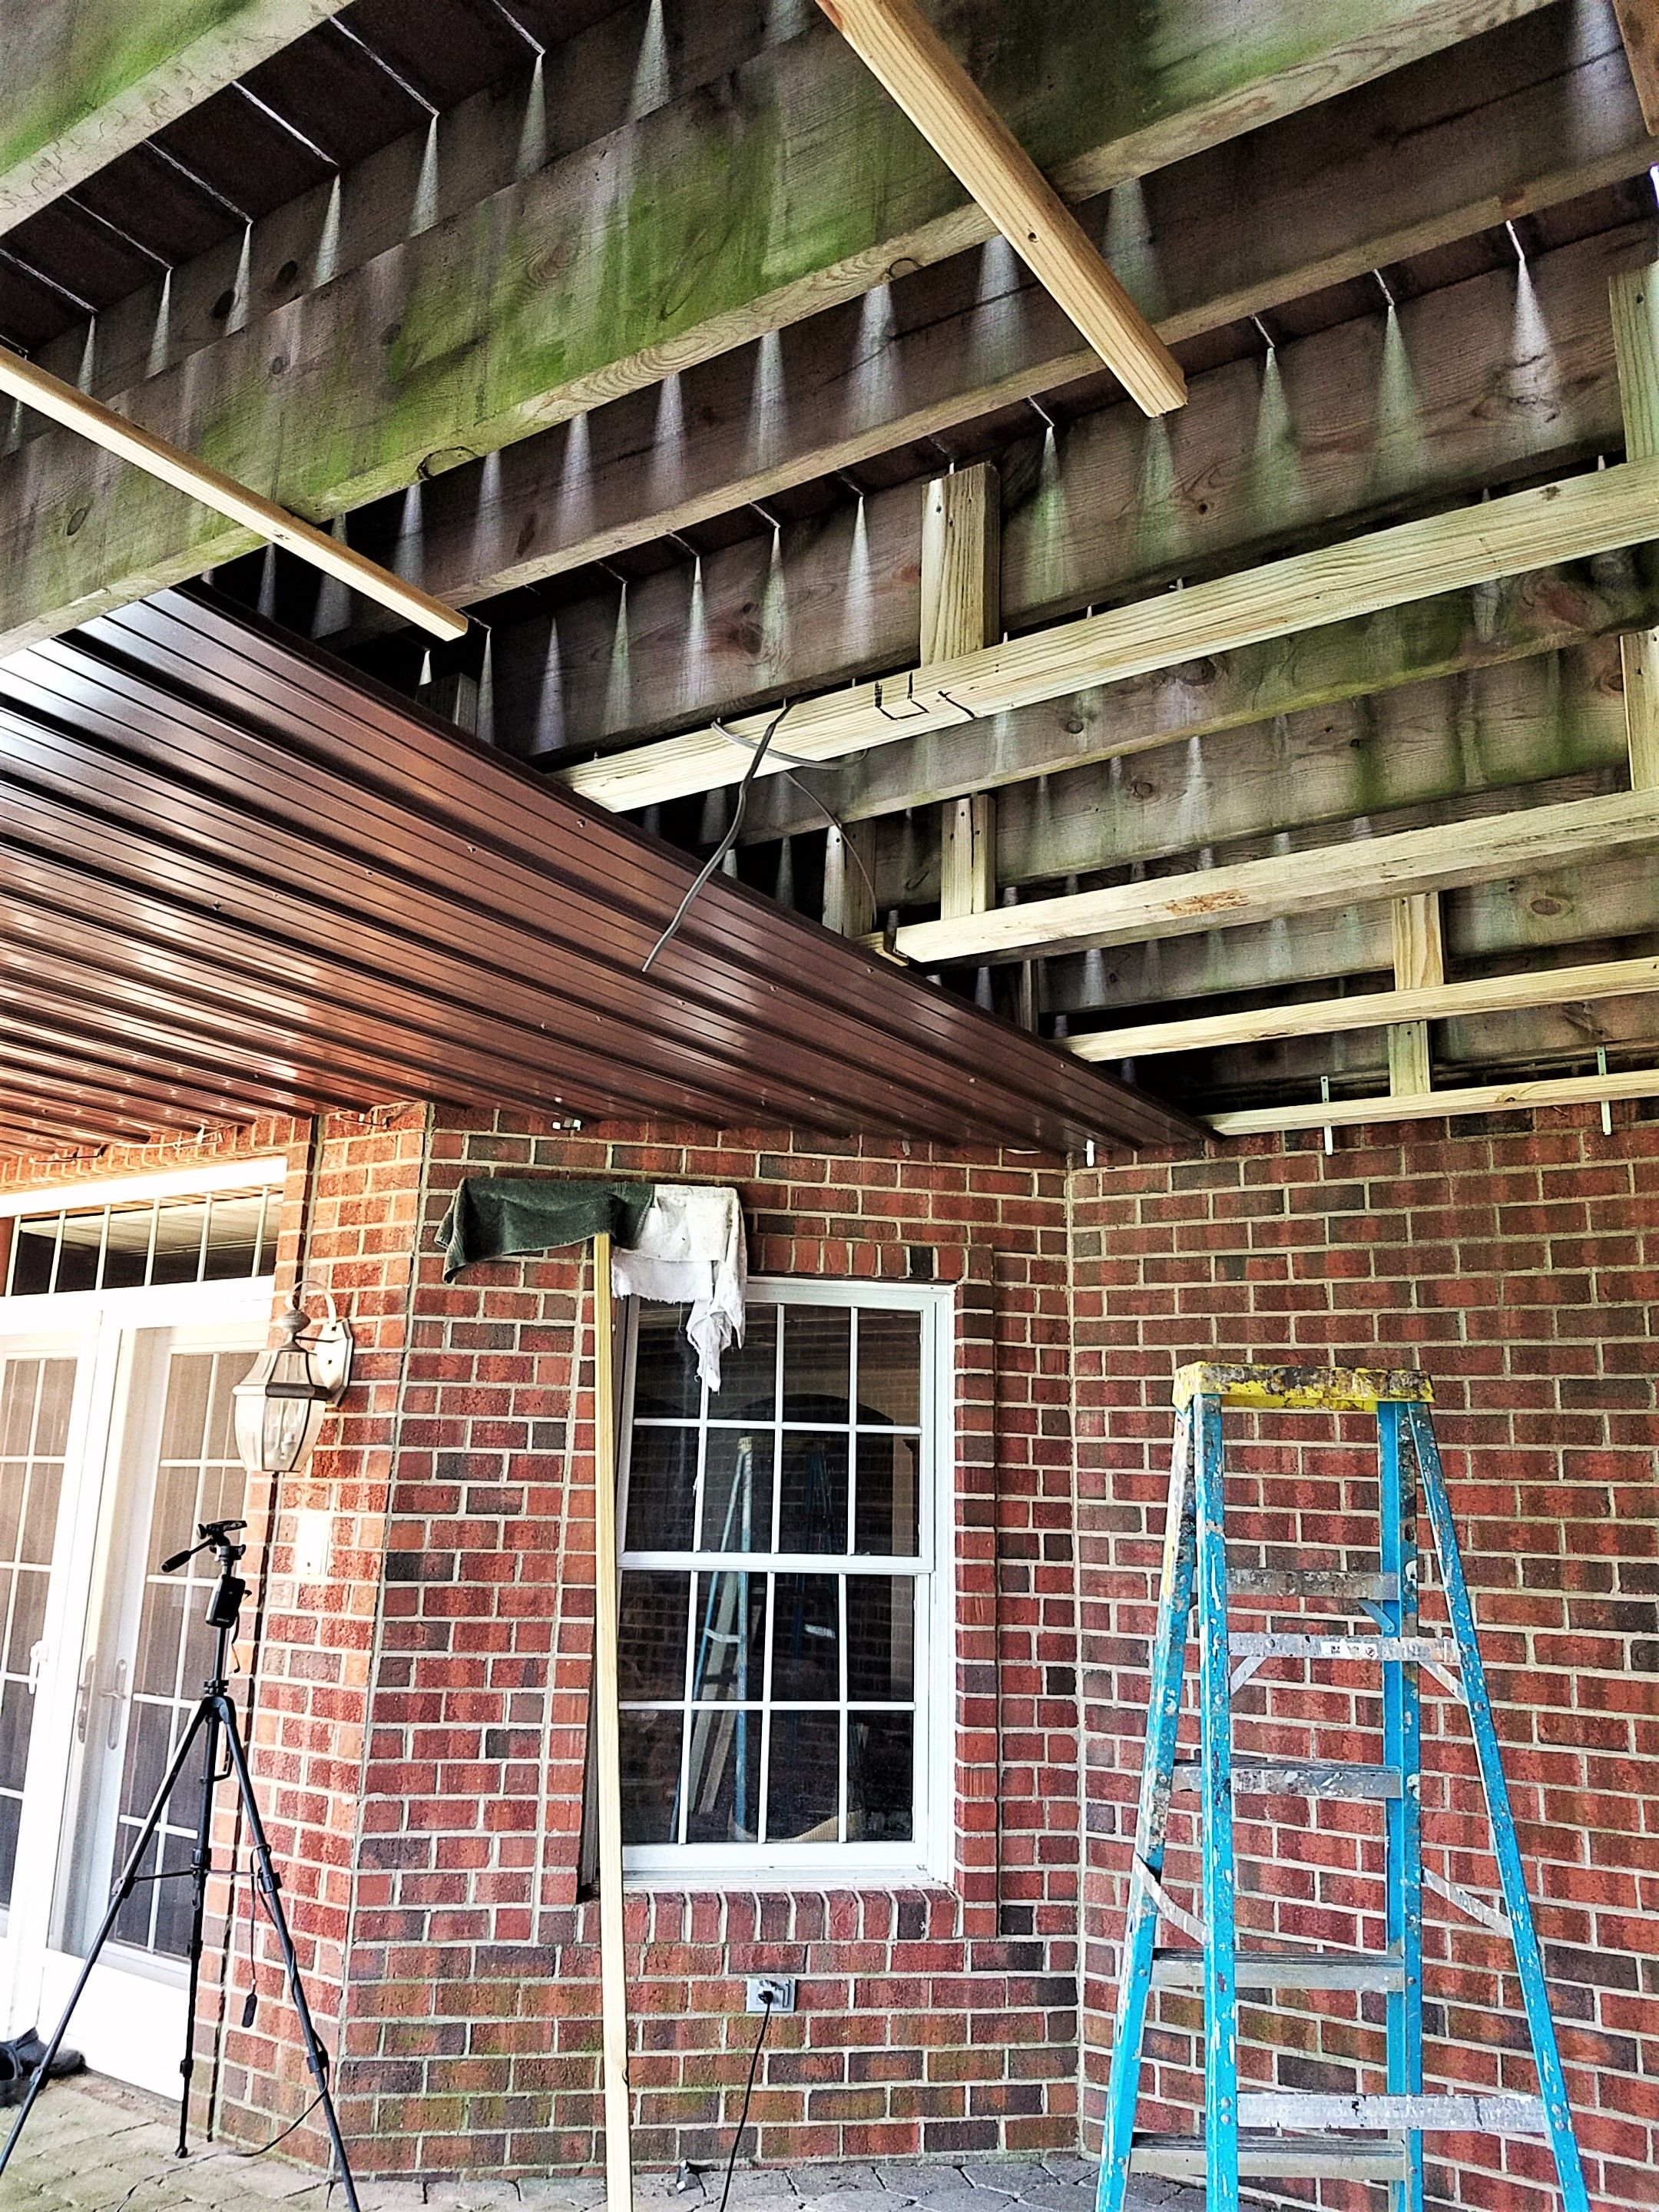 Diy under deck roof and drainage system part 1 renee